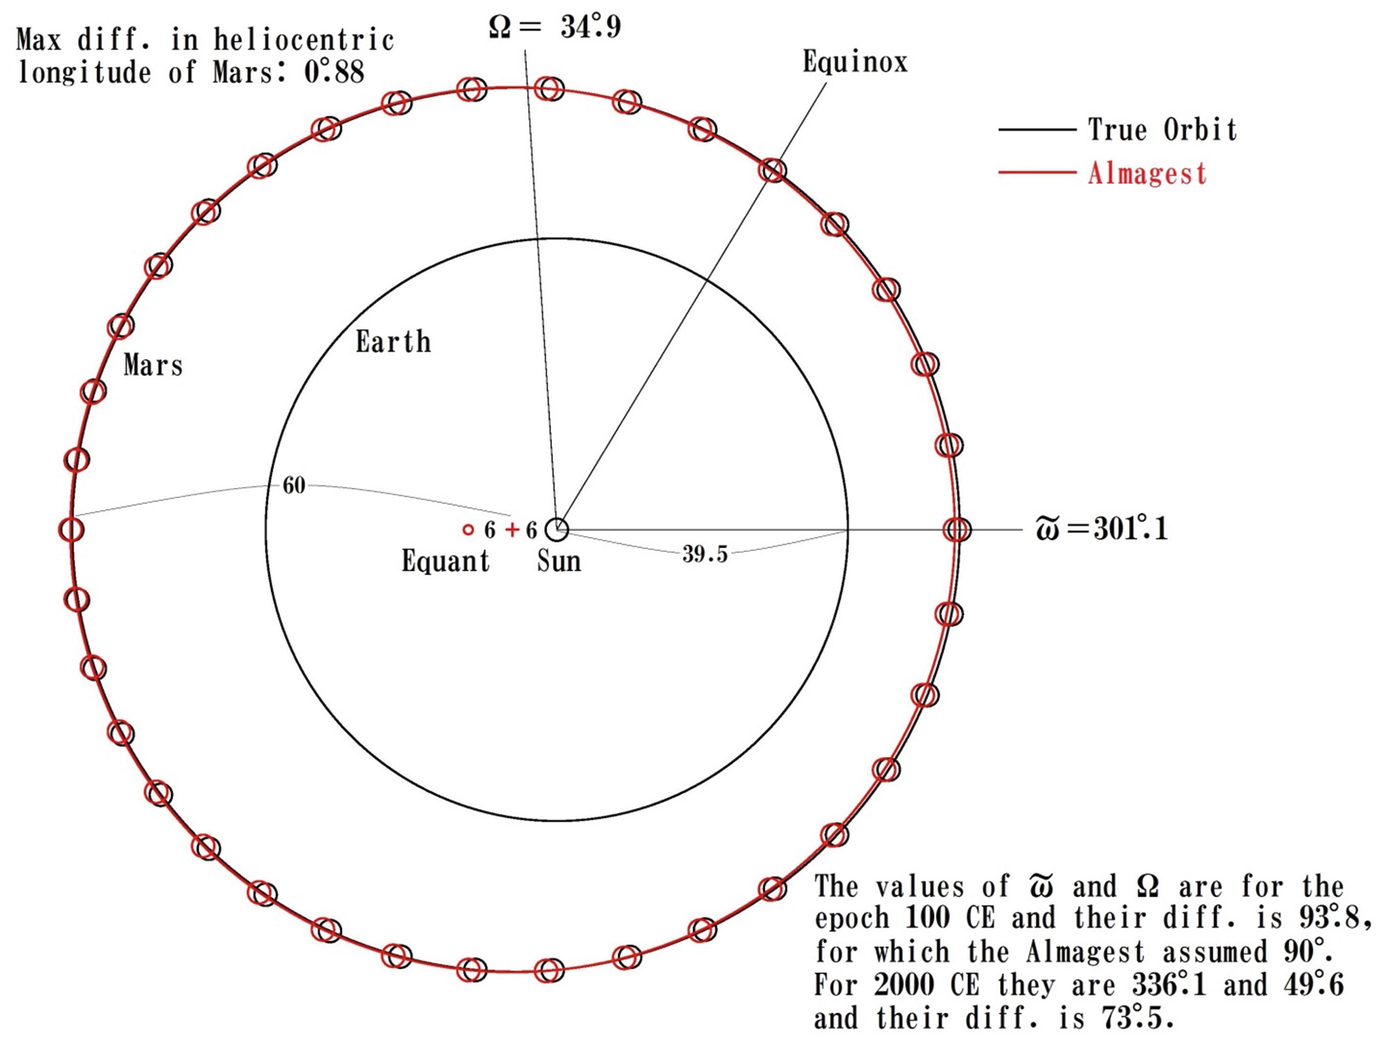 Derivation of the Inclination of Mars' Orbit in the Almagest